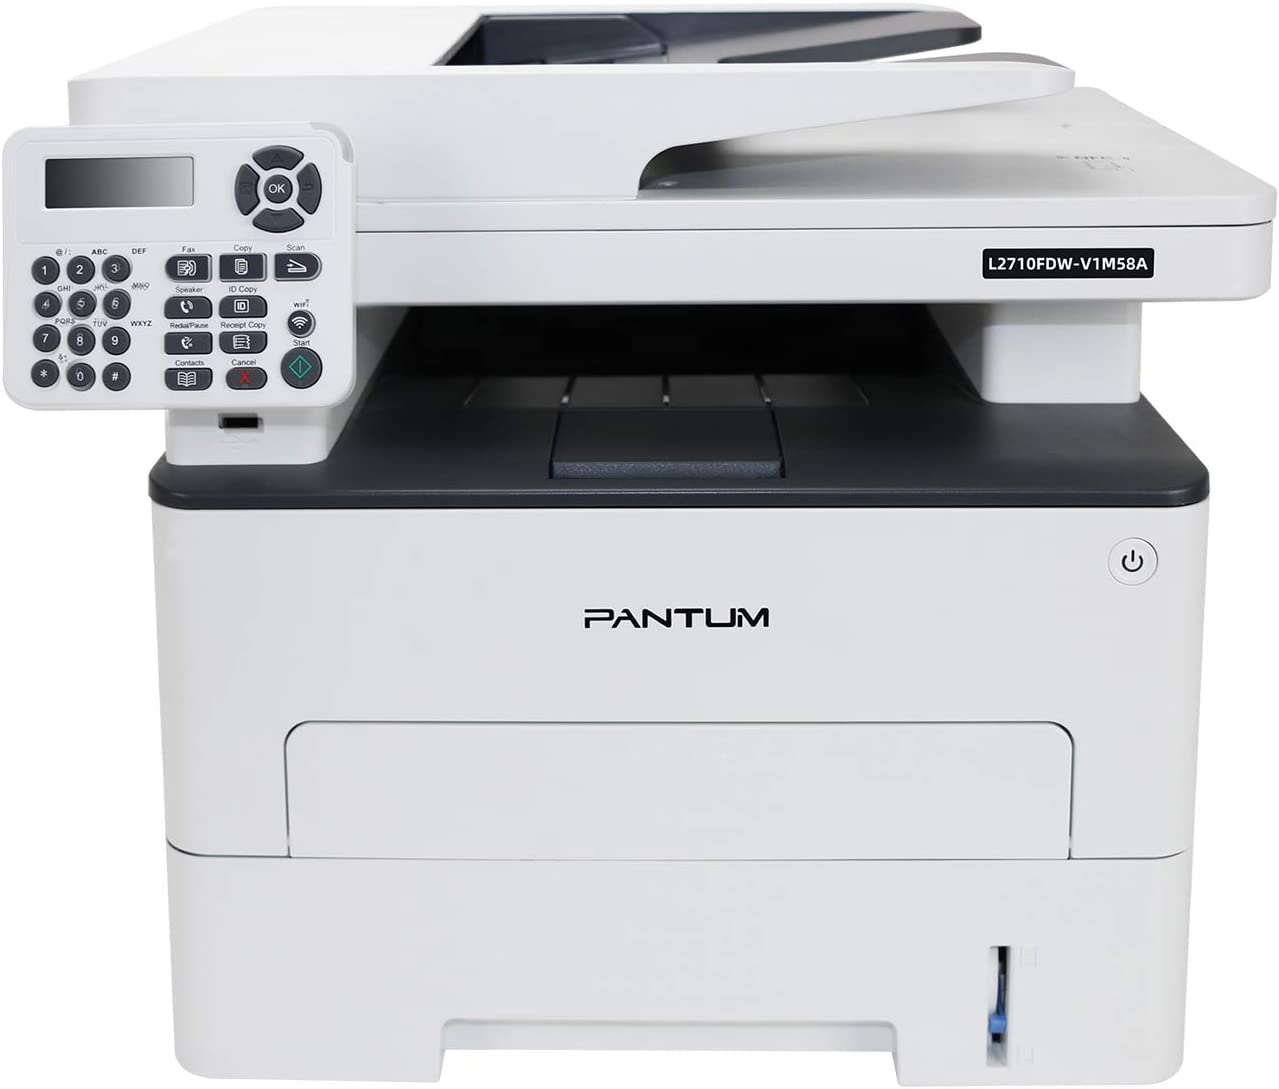 Pantum L2710FDW All-in-One Multifunction Monochrome Laser Printer Scanner Copier & Fax with Convenient Flatbed, Wireless Printing, Duplex Printing